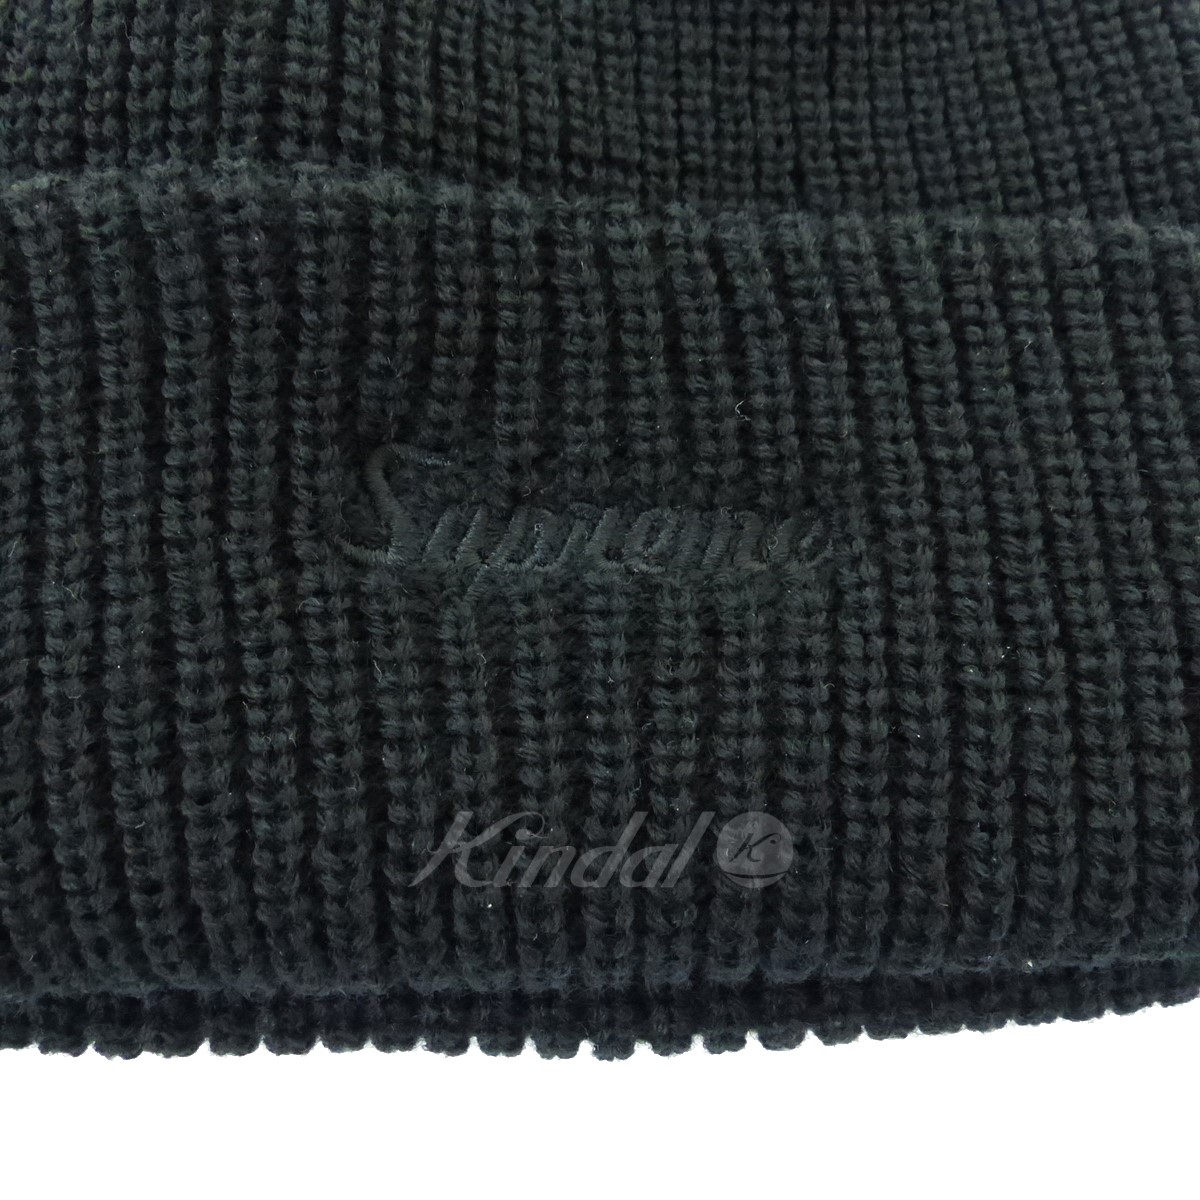 76aa889c466 ... canada supreme loose gauge beanie logo embroidery knit cap 2018a w  black size d64f0 eed0d